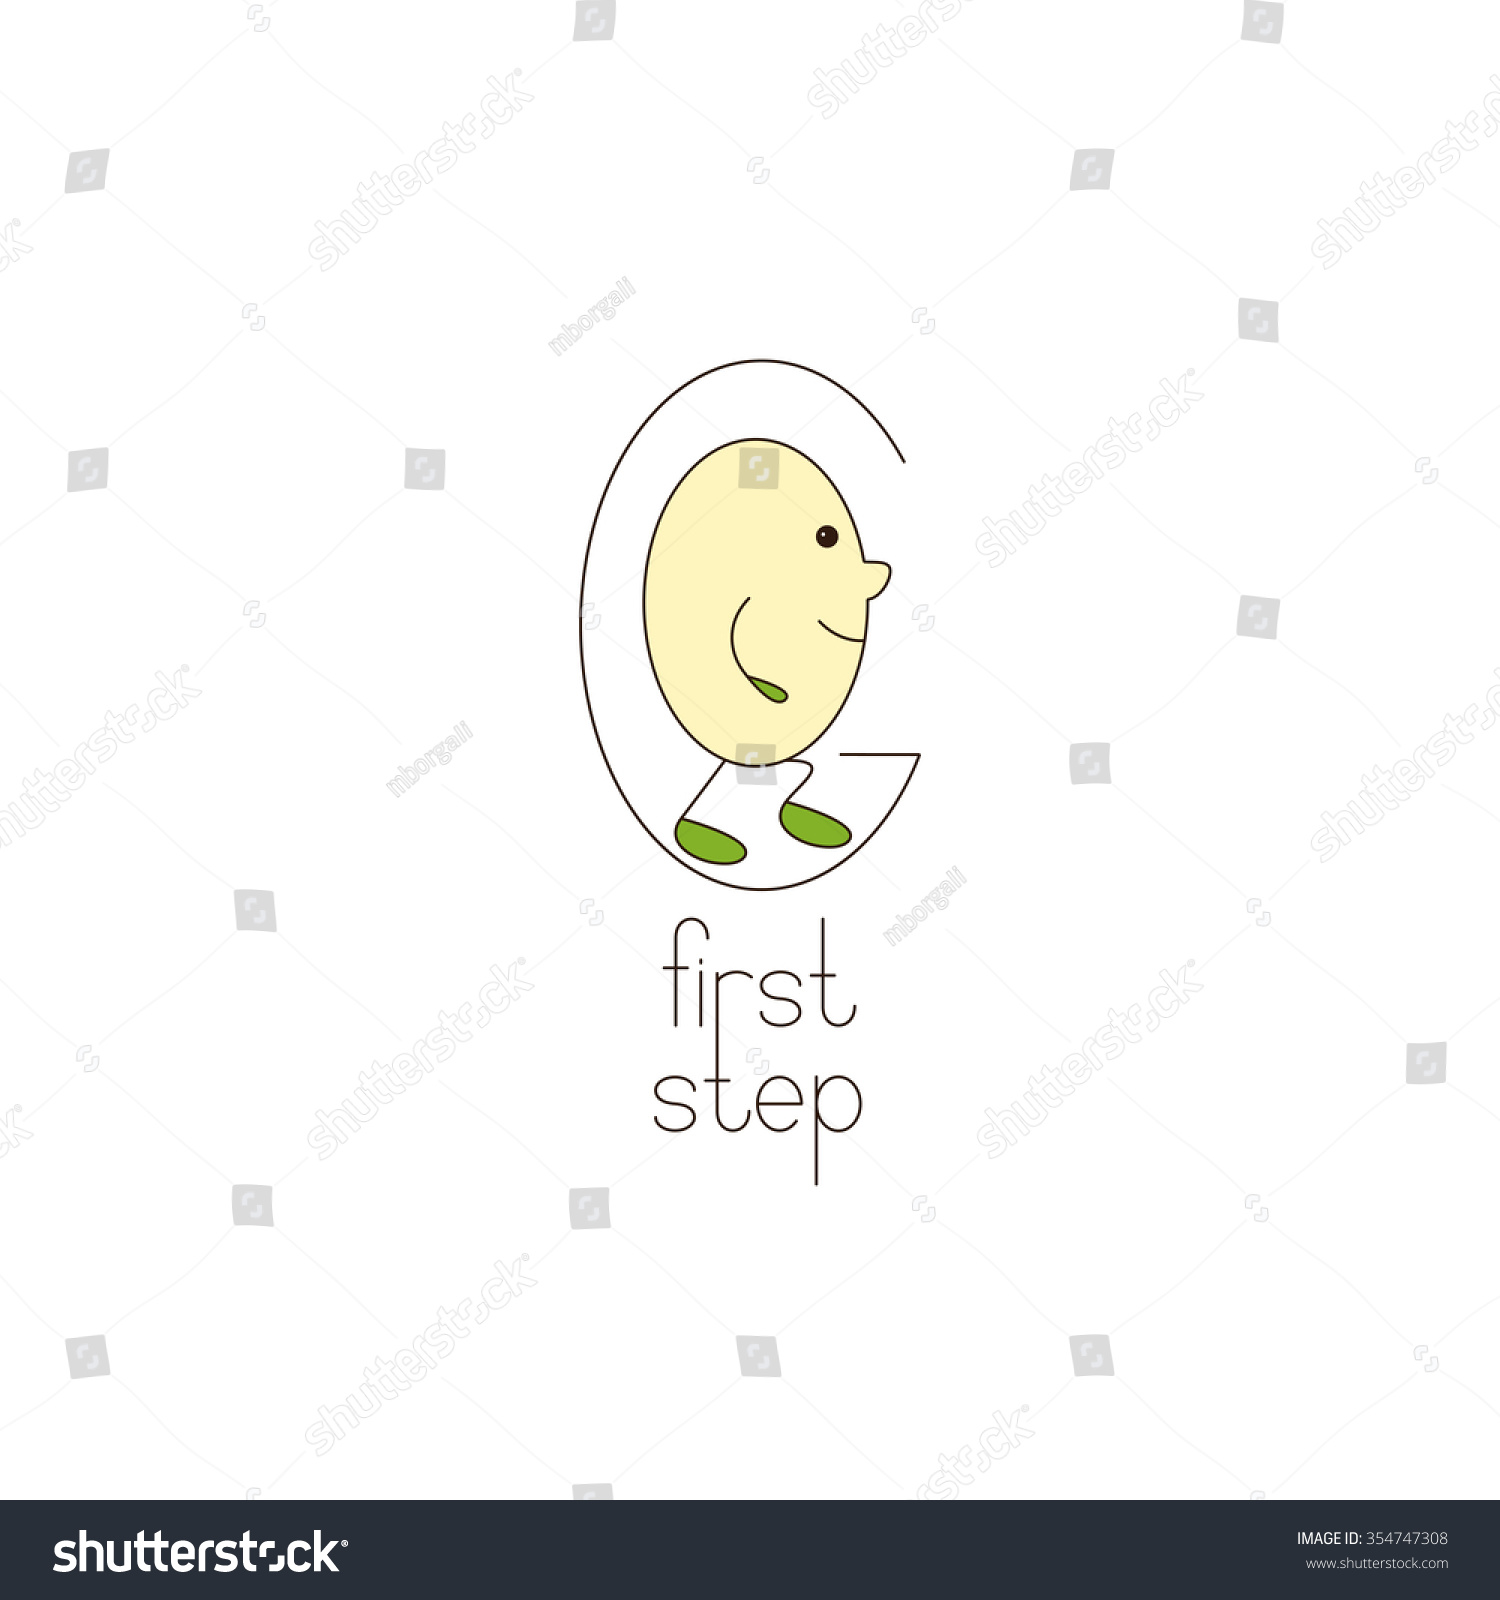 Go logo template letter g letter stock illustration royalty free go logo template with letter g and letter o with legs and hands inside it maxwellsz